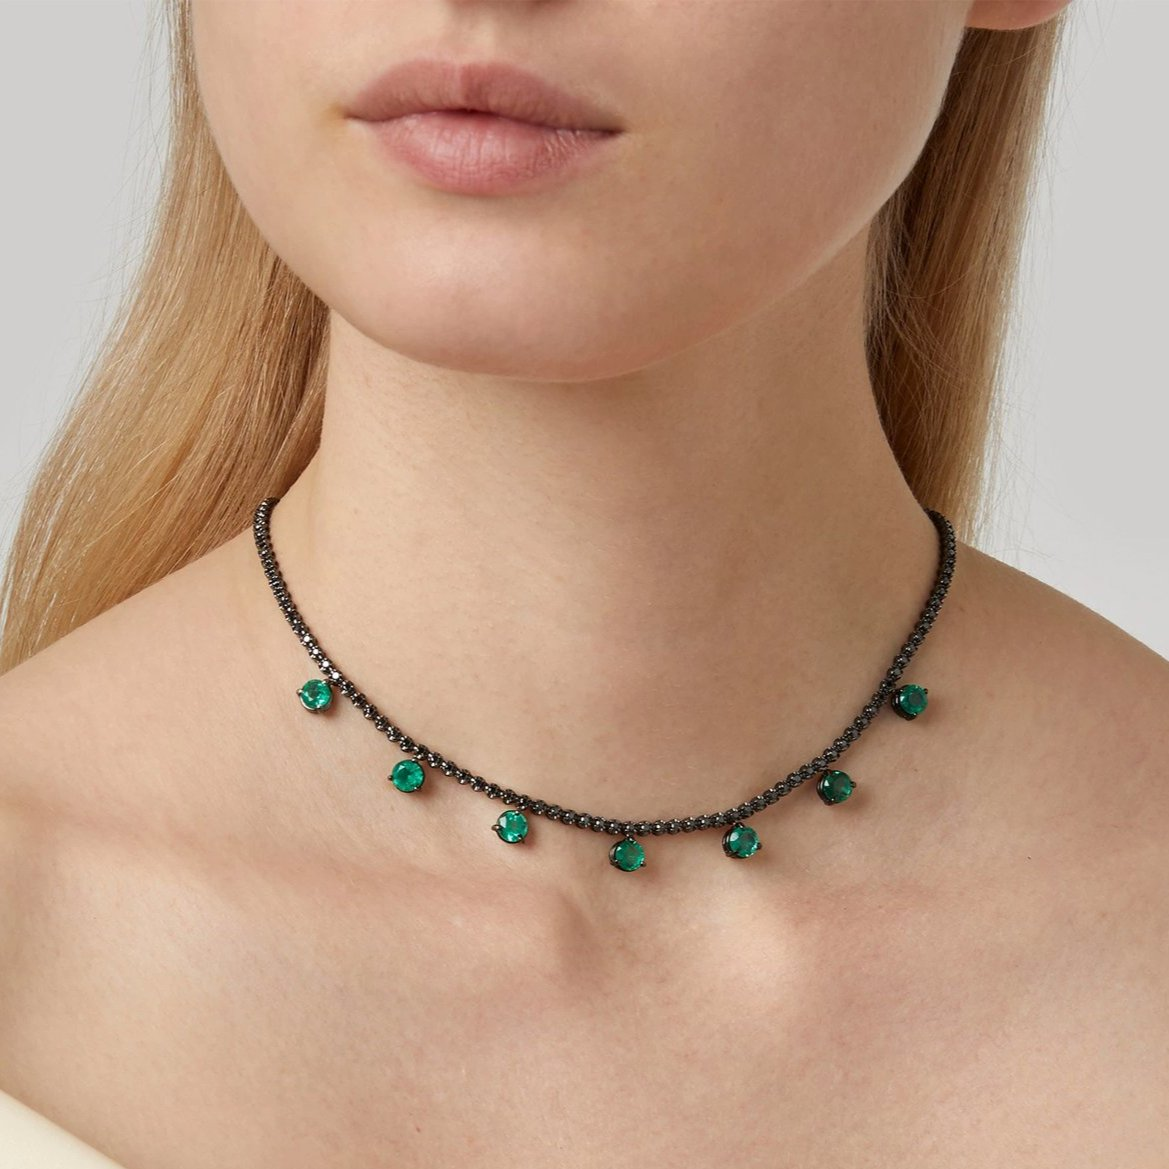 Entwined Emerald Necklace